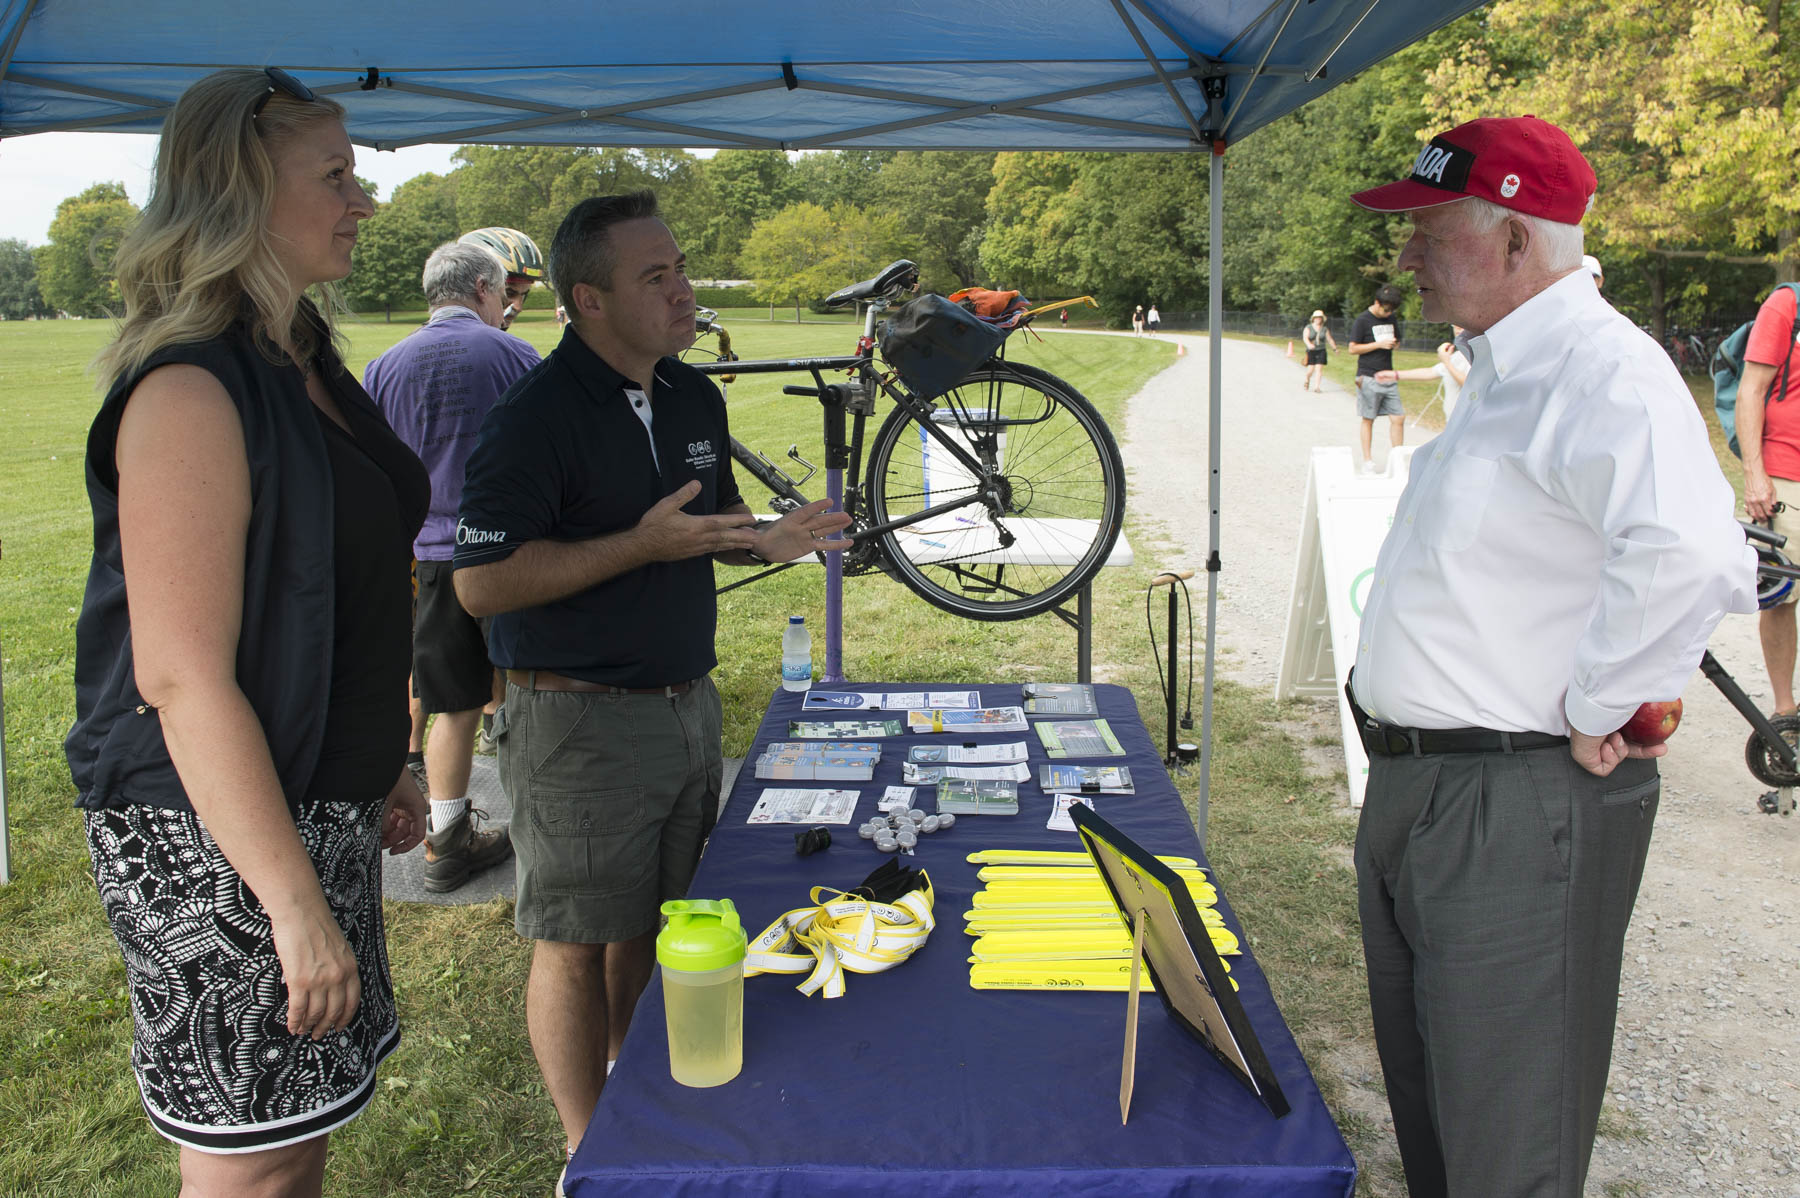 Safer Roads Ottawa provided guests with bike safety information.